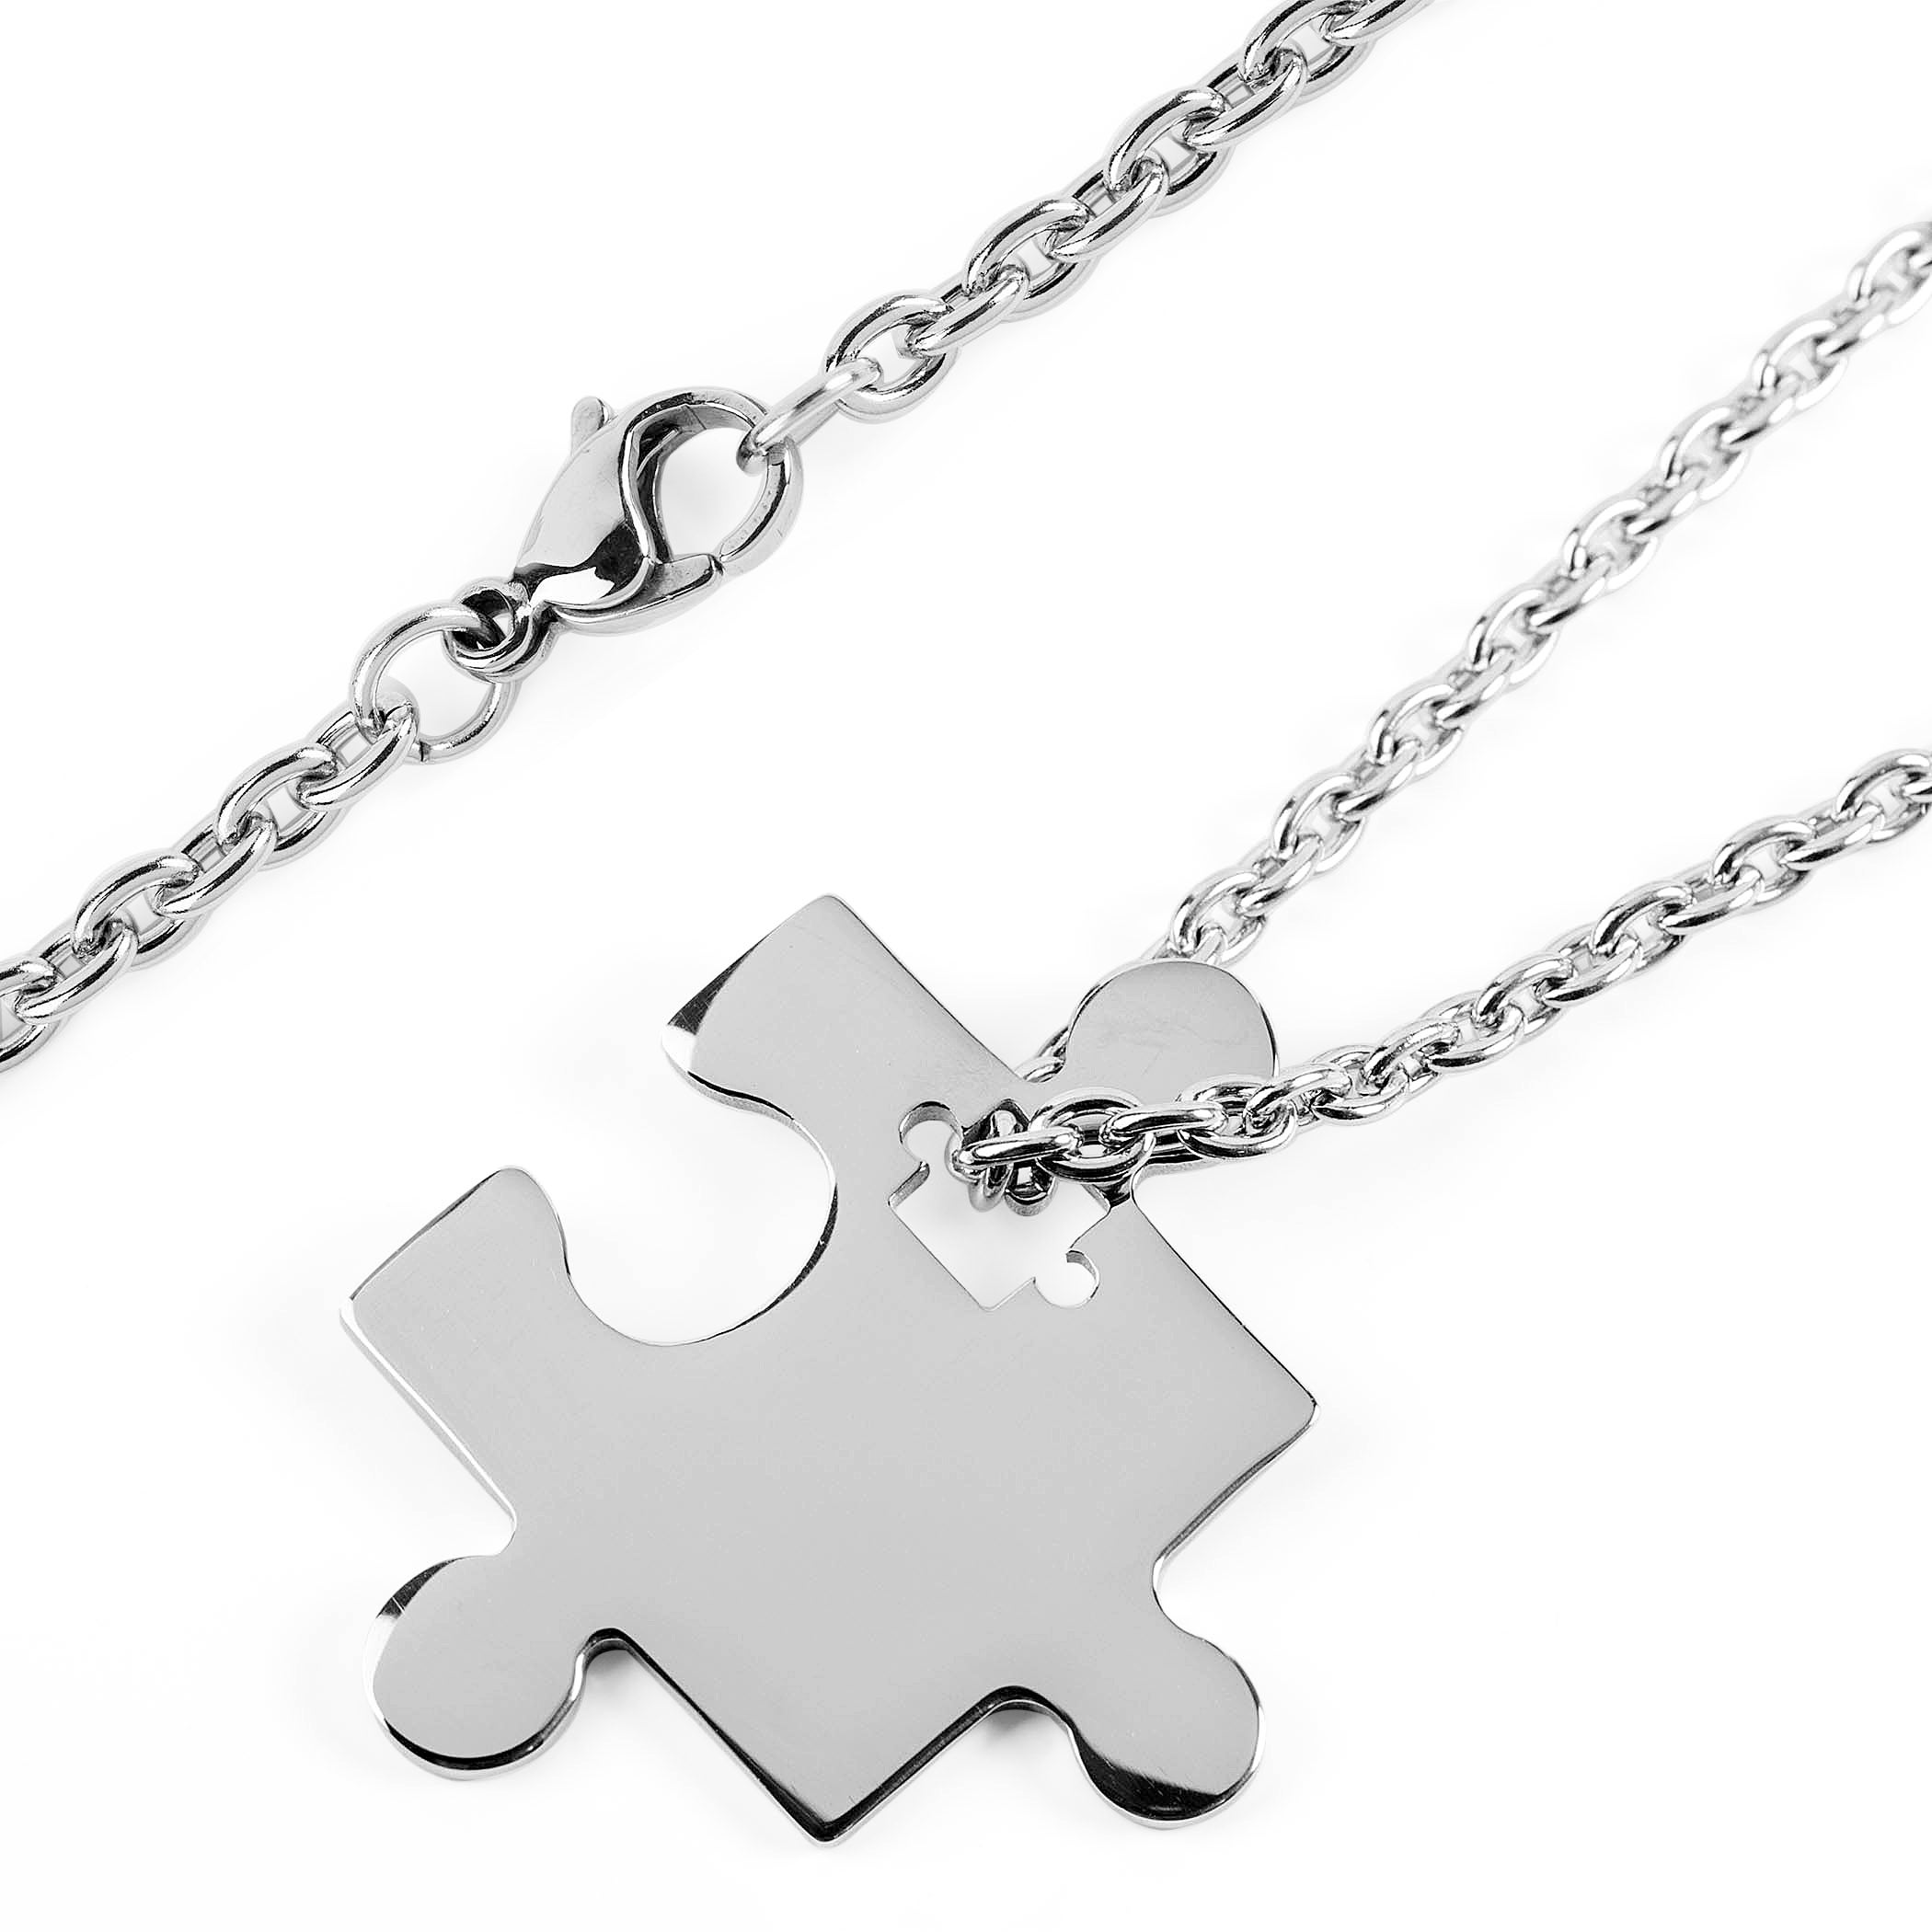 Shop womens stainless steel jigsaw puzzle piece pendant necklace shop womens stainless steel jigsaw puzzle piece pendant necklace free shipping on orders over 45 overstock 10352173 aloadofball Gallery